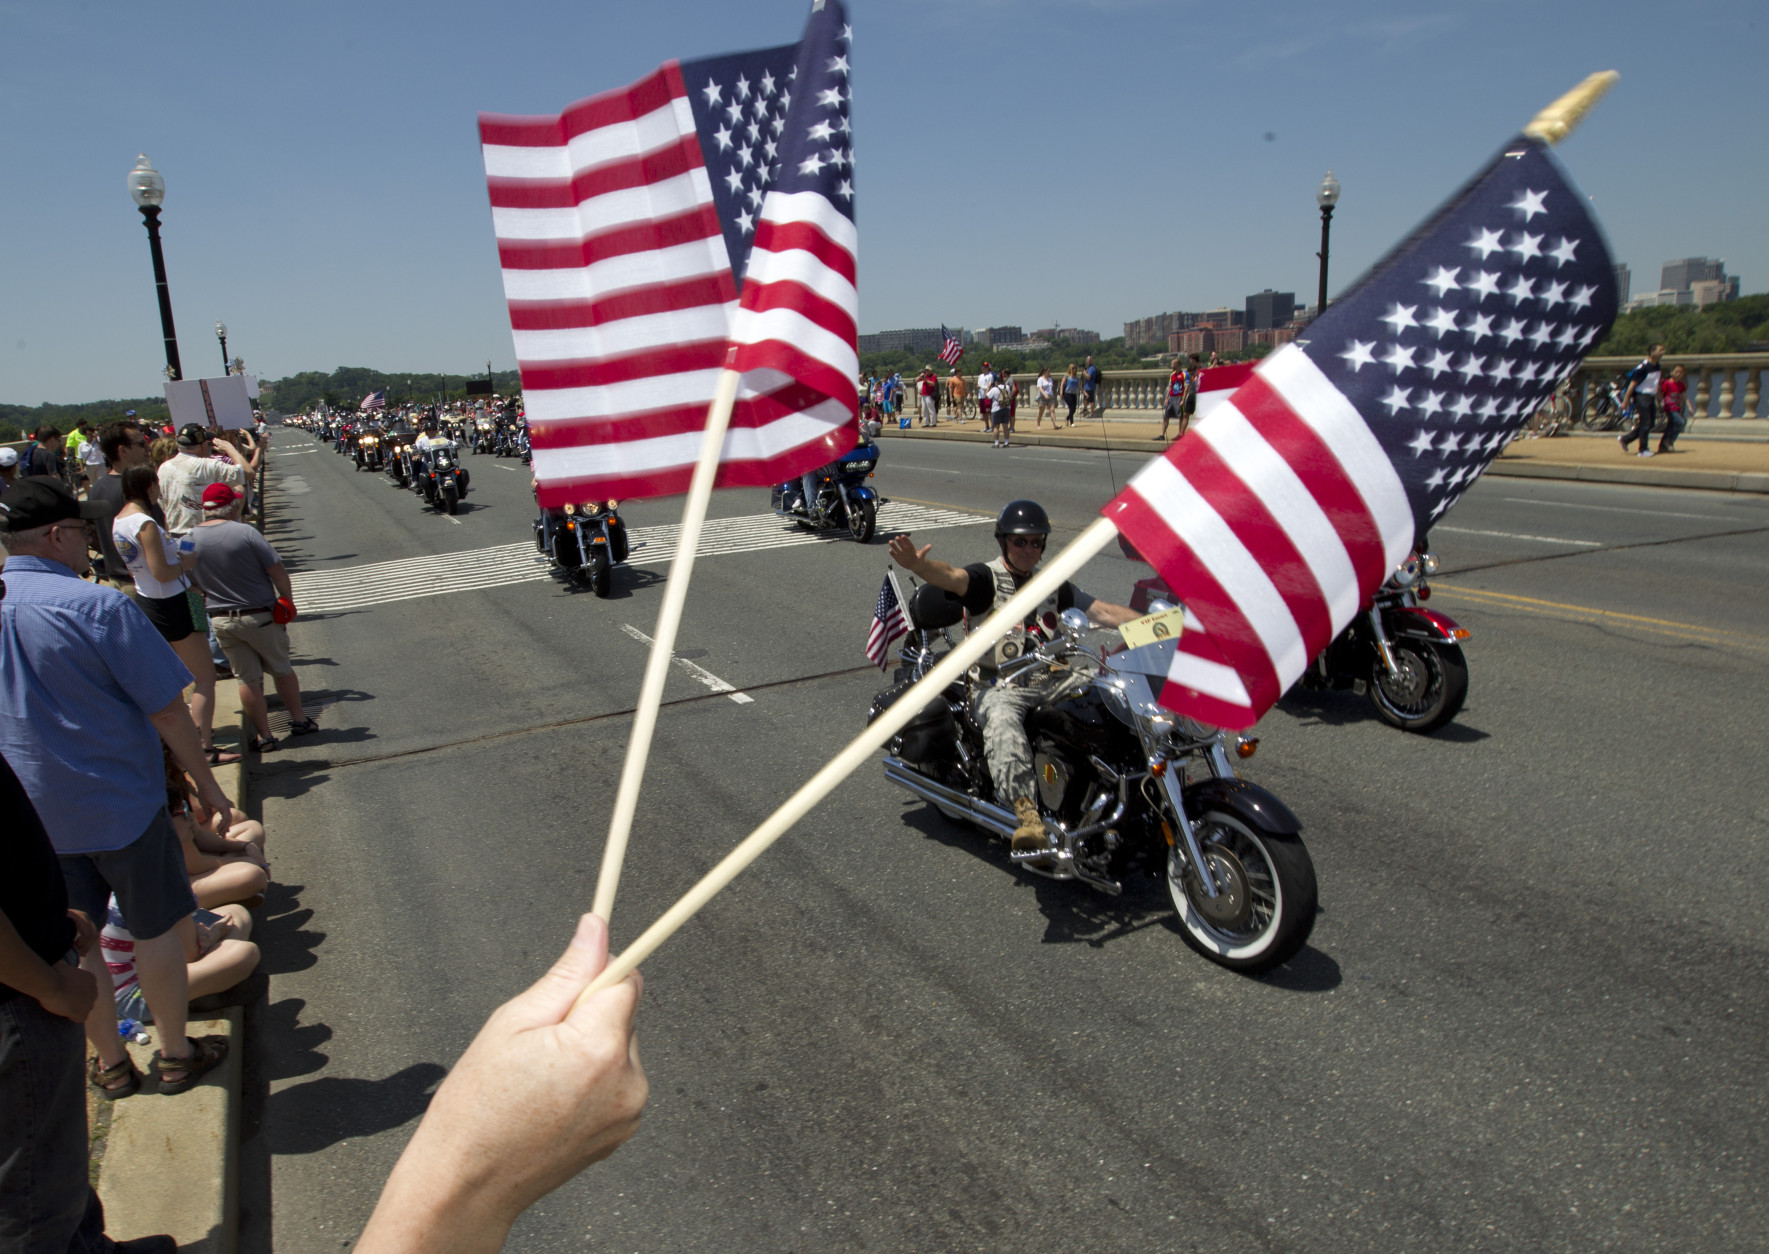 Participants in the Rolling Thunder annual motorcycle rally ride past Arlington Memorial Bridge  during the annual Rolling Thunder parade ahead of Memorial Day in Washington, Sunday, May 24, 2015.  (AP Photo/Jose Luis Magana)